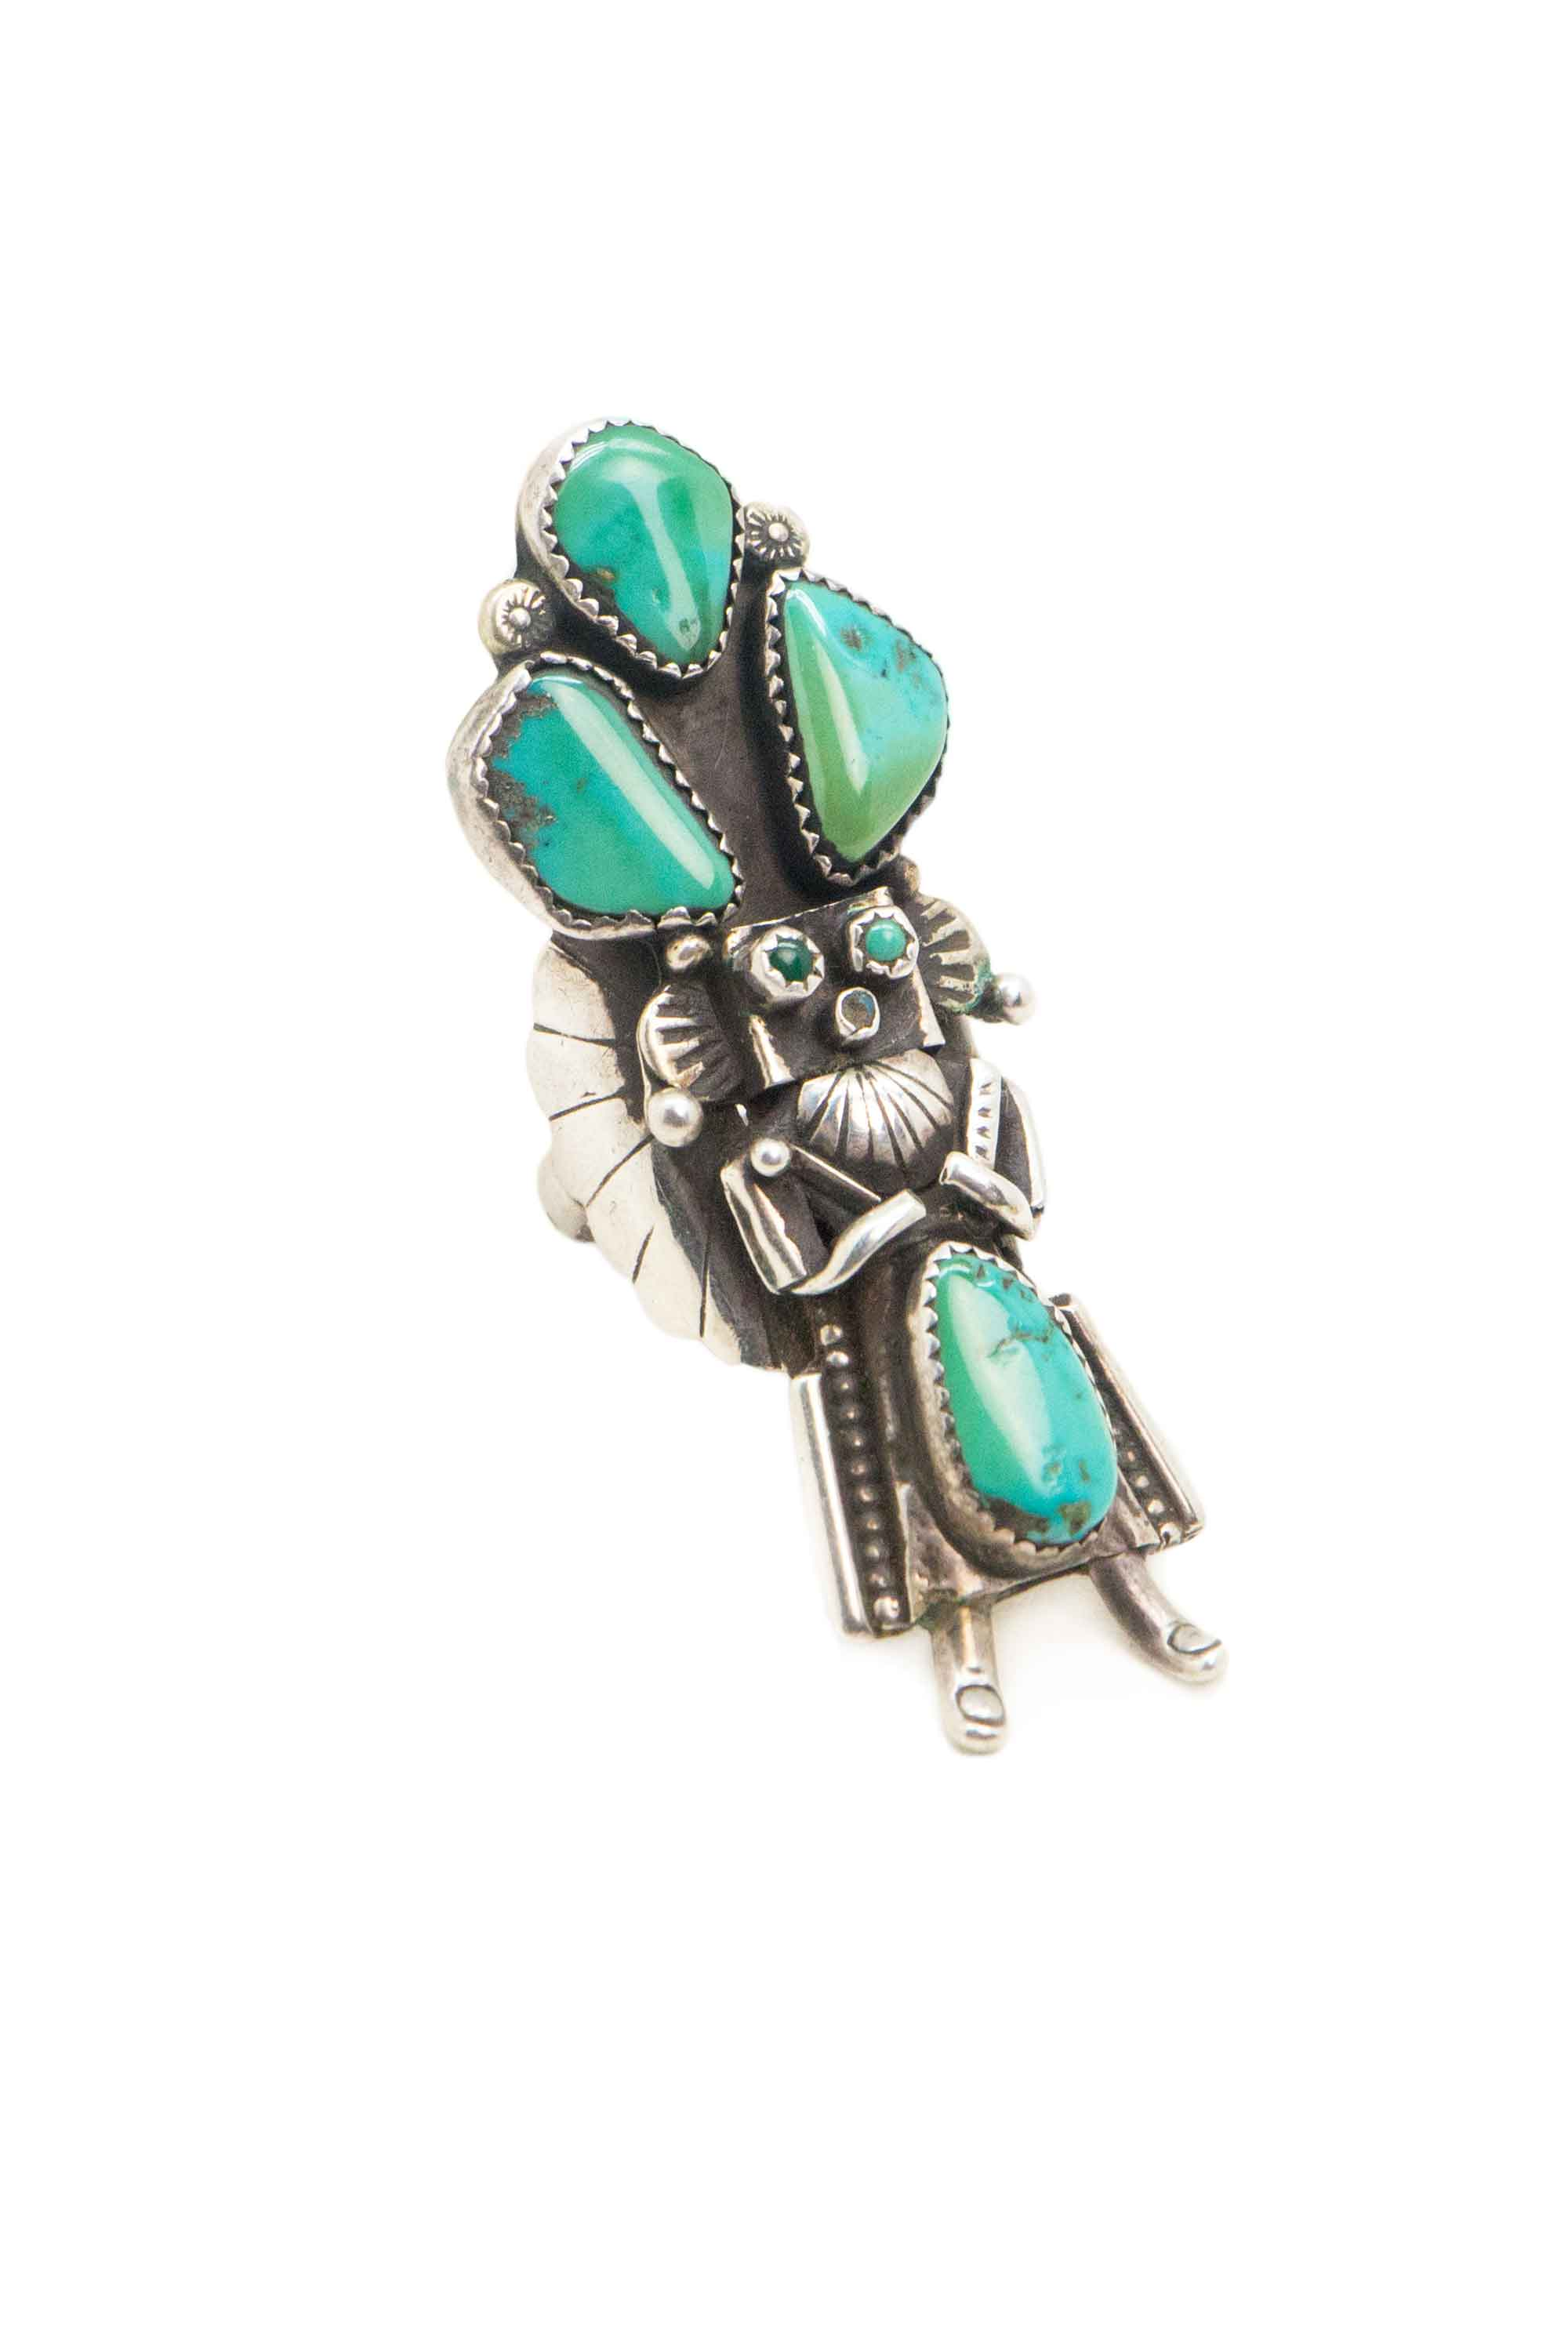 Ring, Conversational, Kachina, Turquoise, Vintage, 586